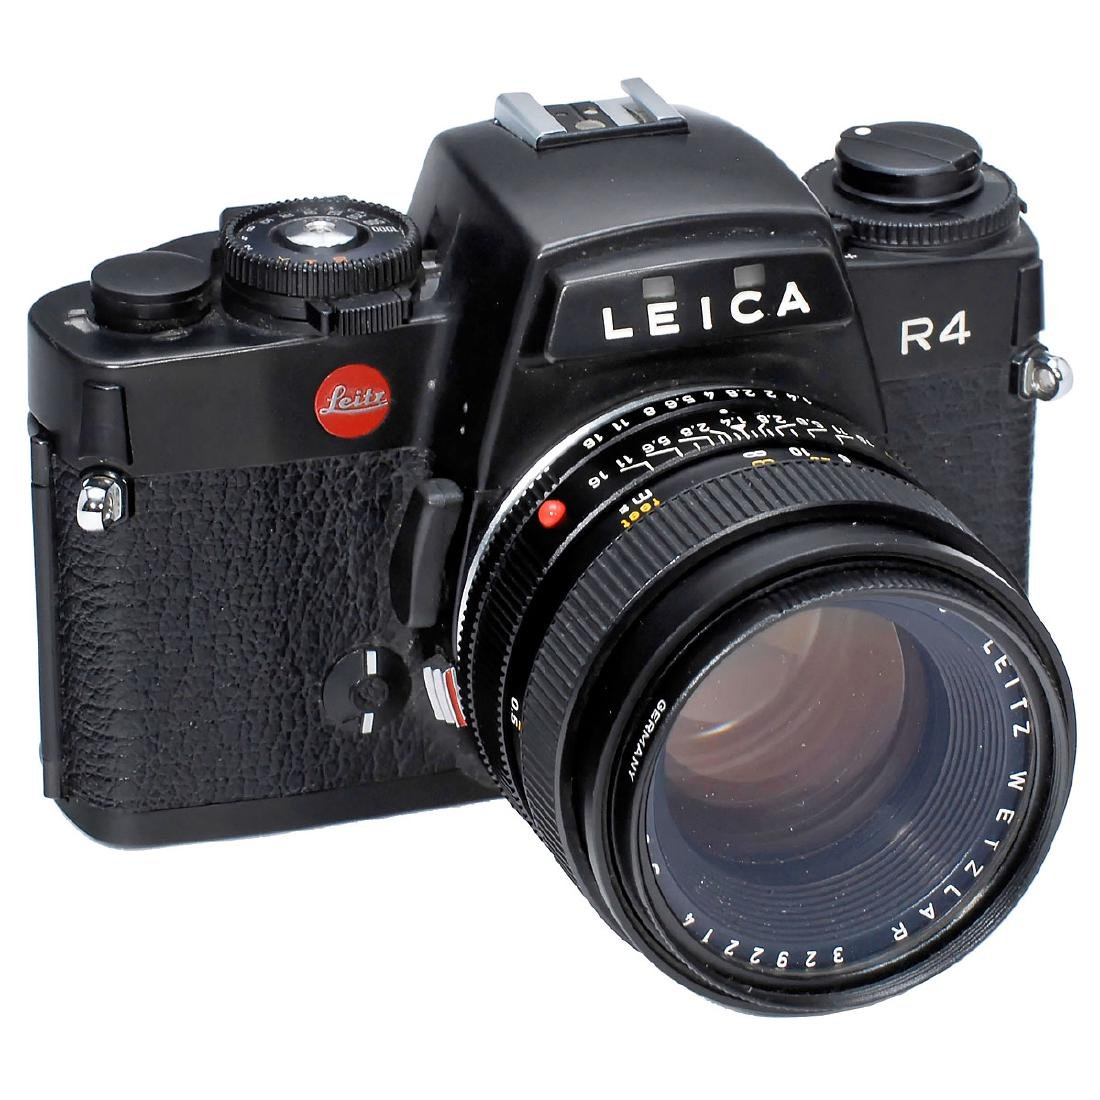 Leica R4 with Summilux-R 1,4/50 mm